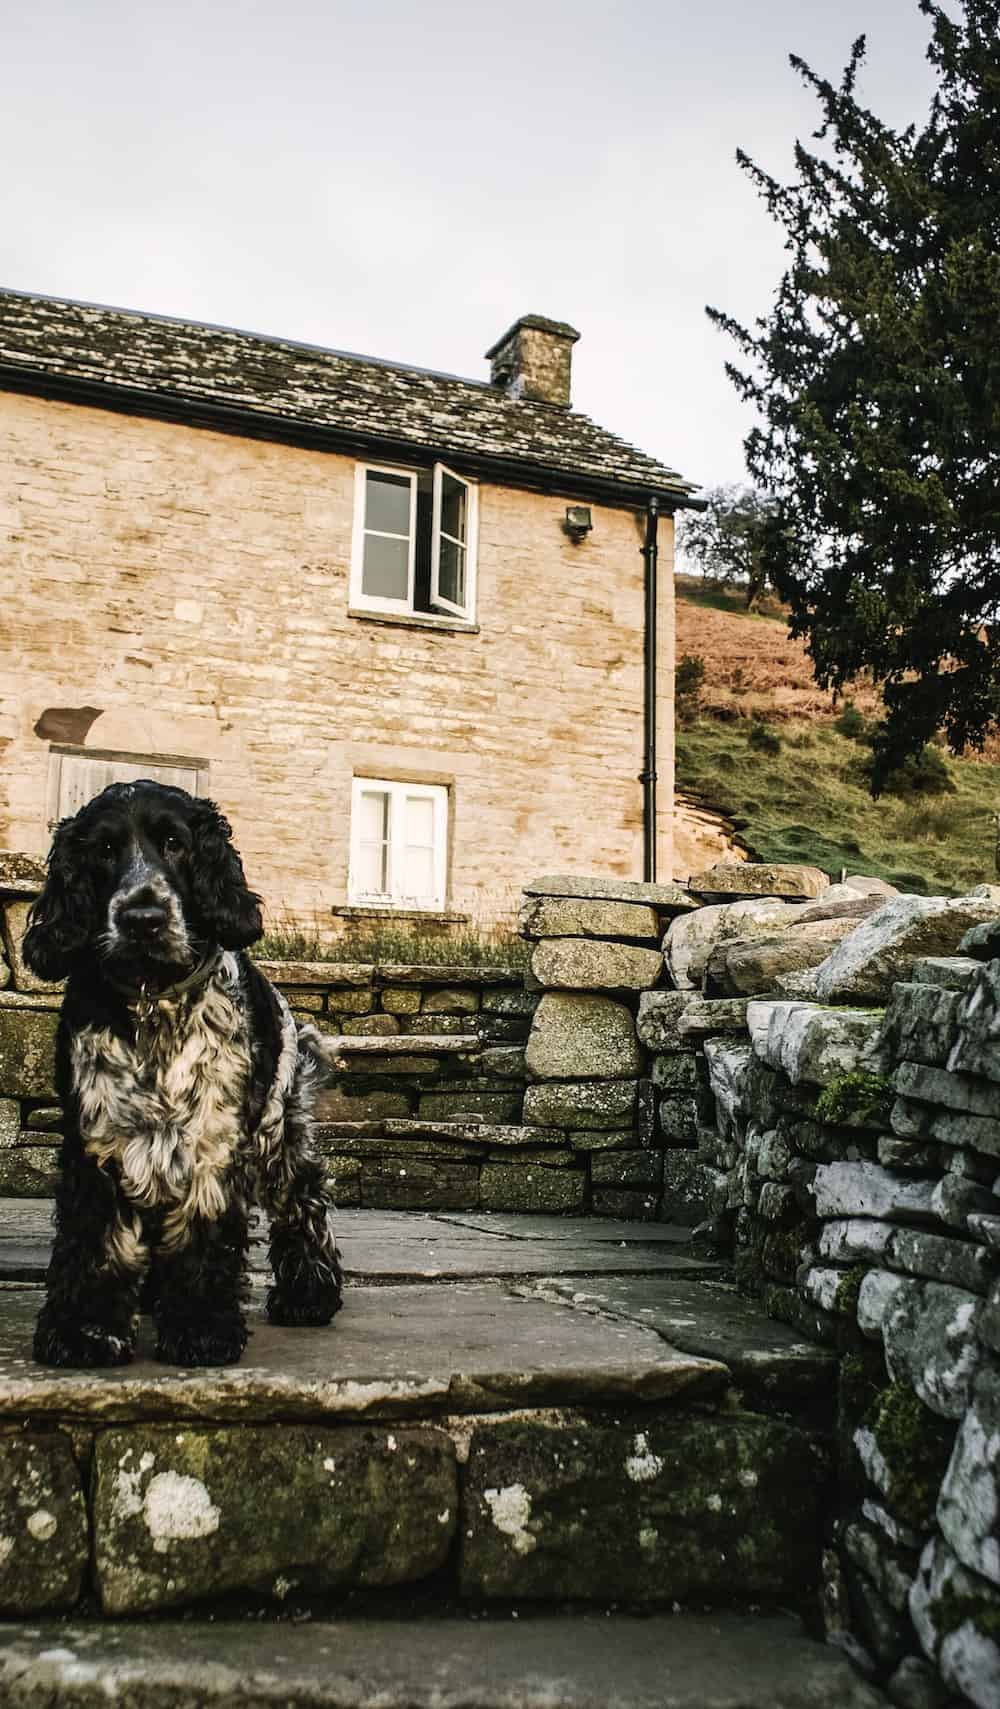 loved our stay at dog friendly welsh holiday cottage patrishow farm in the brecon beacons wales - a simple, contemporary rustic welsh cottage with thick stone walls, slate floors, old wooden doors and windows and spiral stone staircases. Click through to see more beautiful images of the cottage and the area